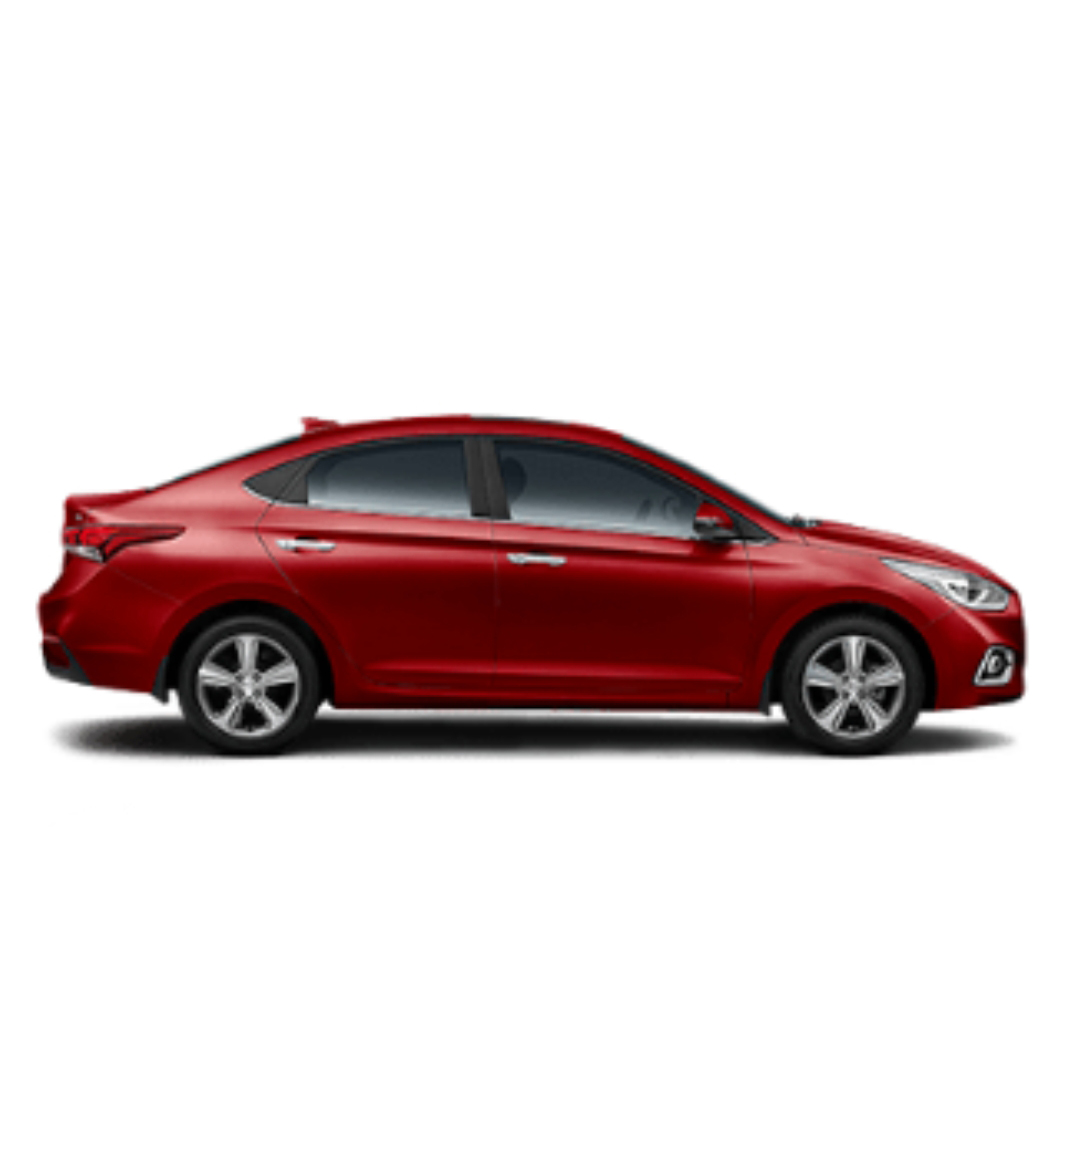 https://iciciauto.com/storage/upload/model_images/Hyundai Verna-Sedan-Side View.jpg